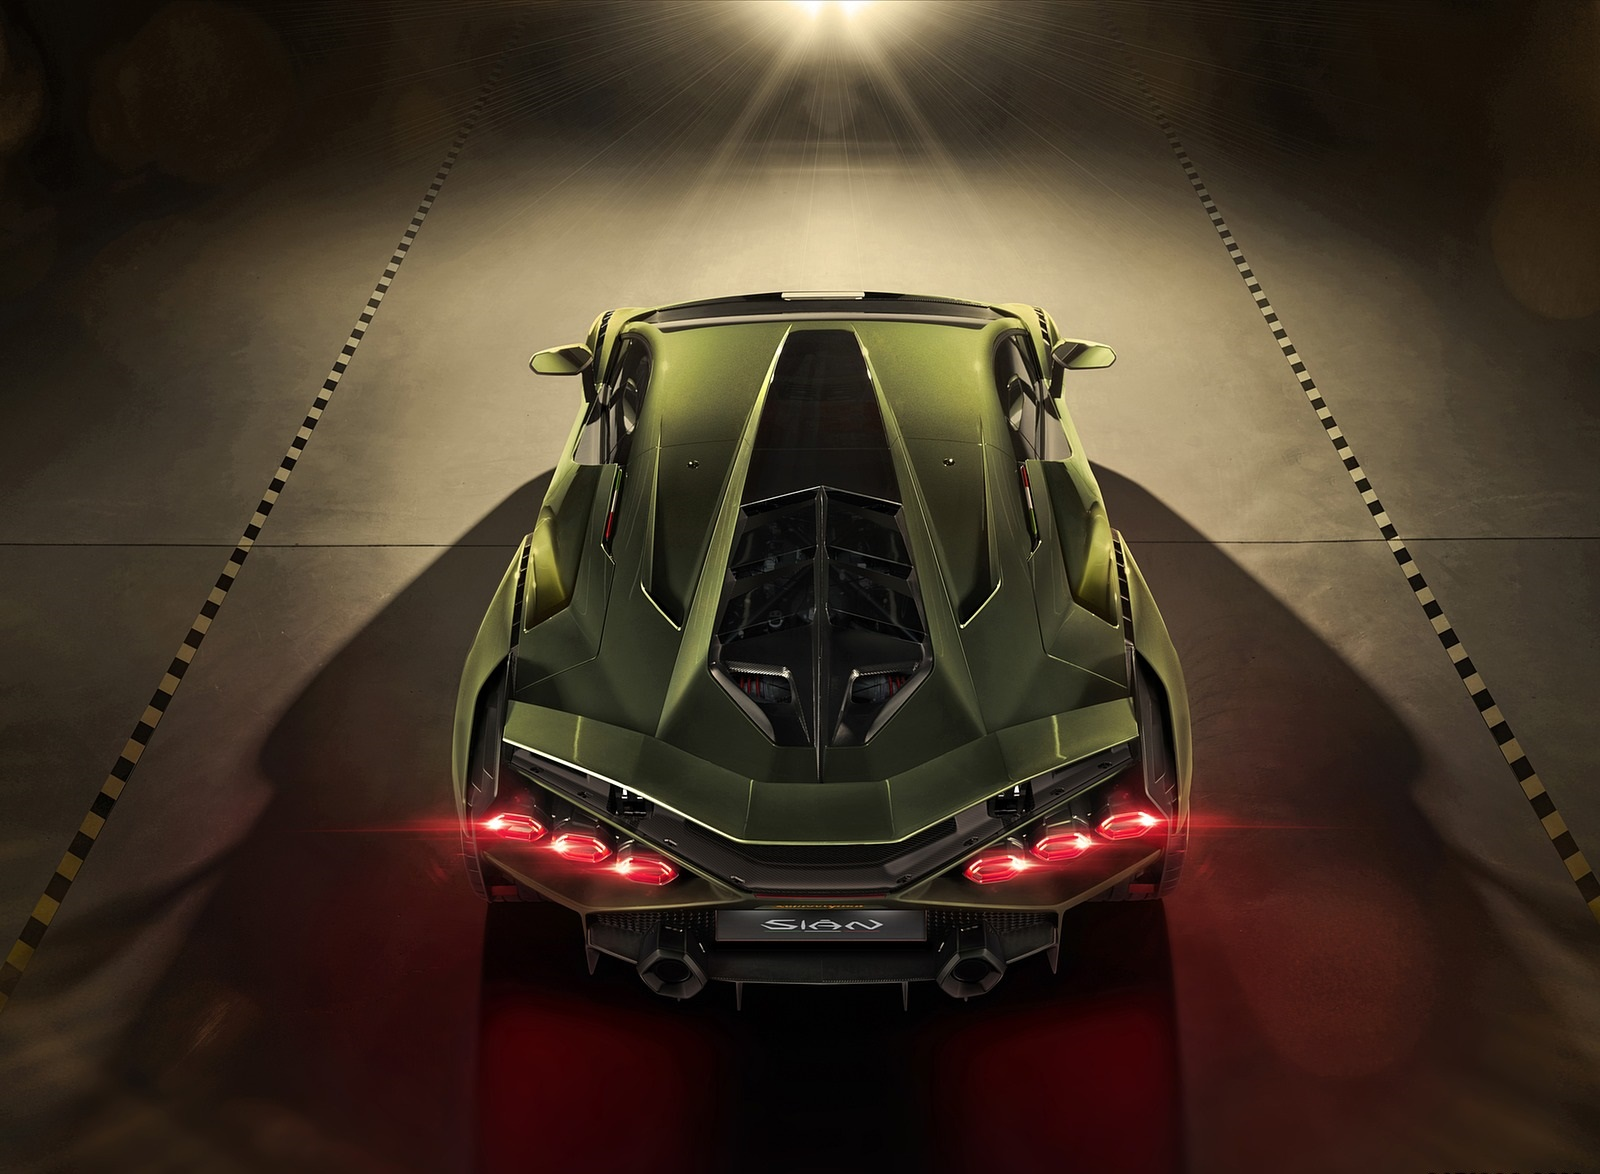 2020 Lamborghini Sián Top Wallpapers #16 of 18